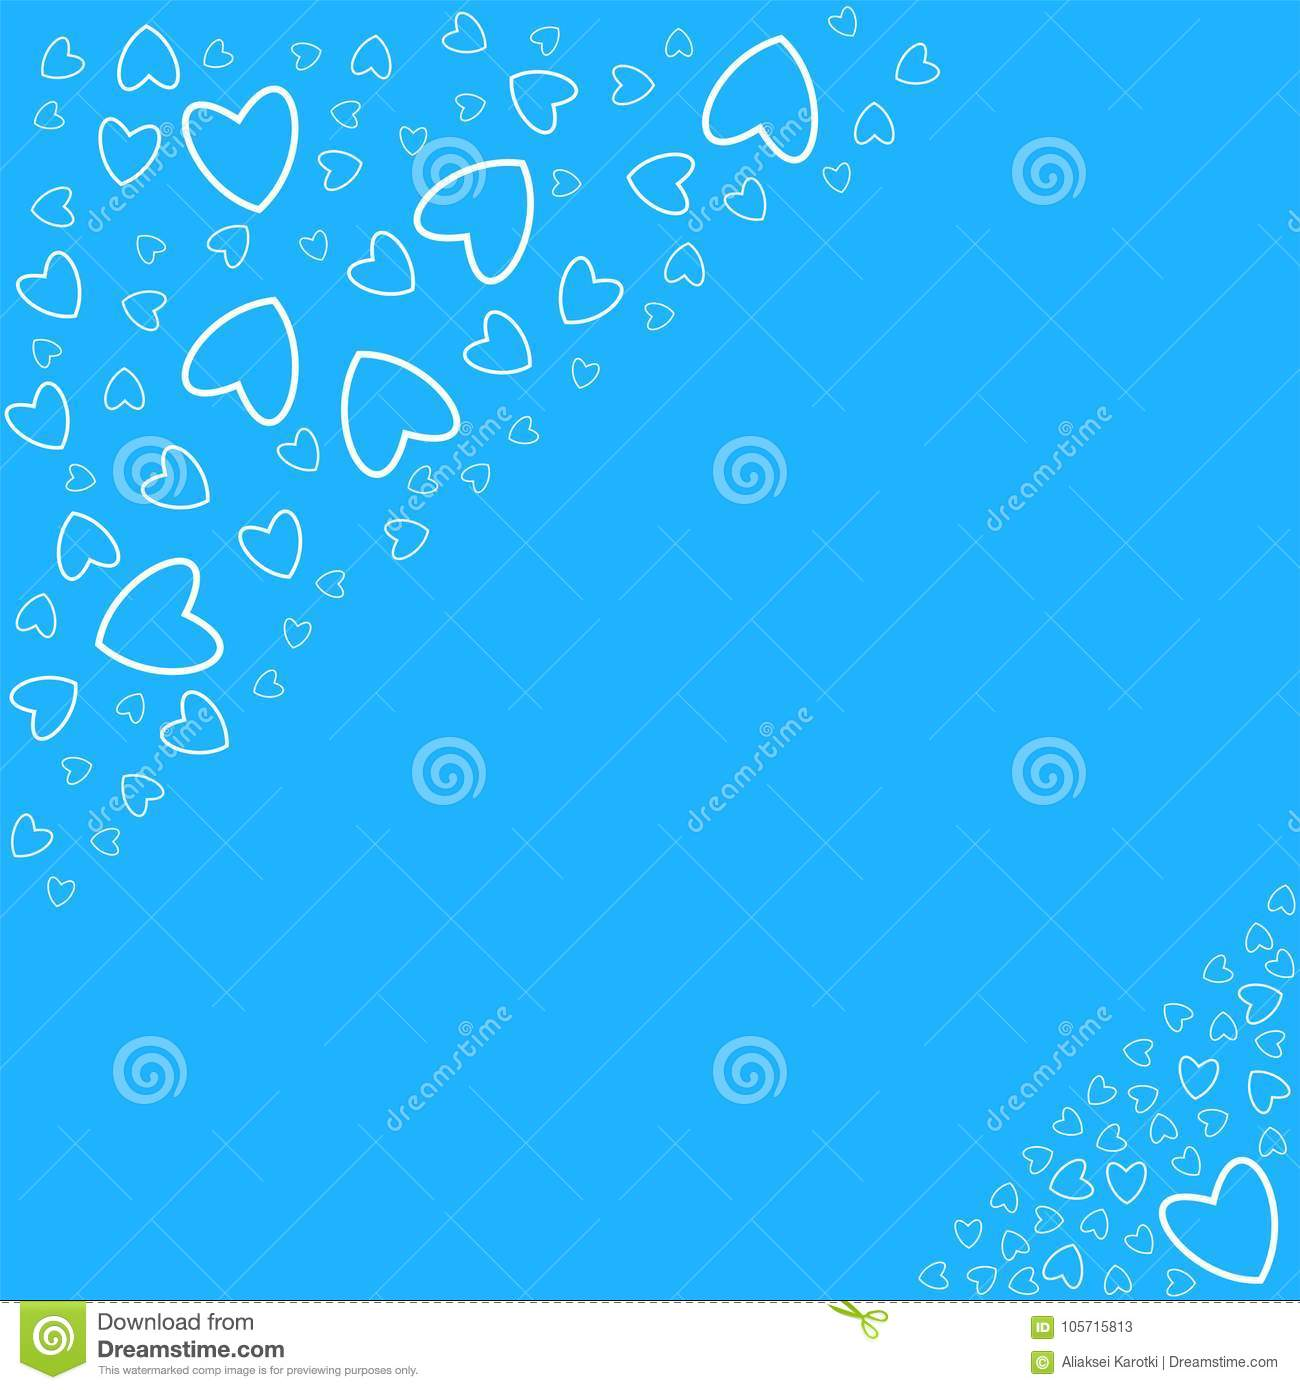 Wedding Po Frame | Frame Of Hearts On A Blue Background Prints Greeting Cards